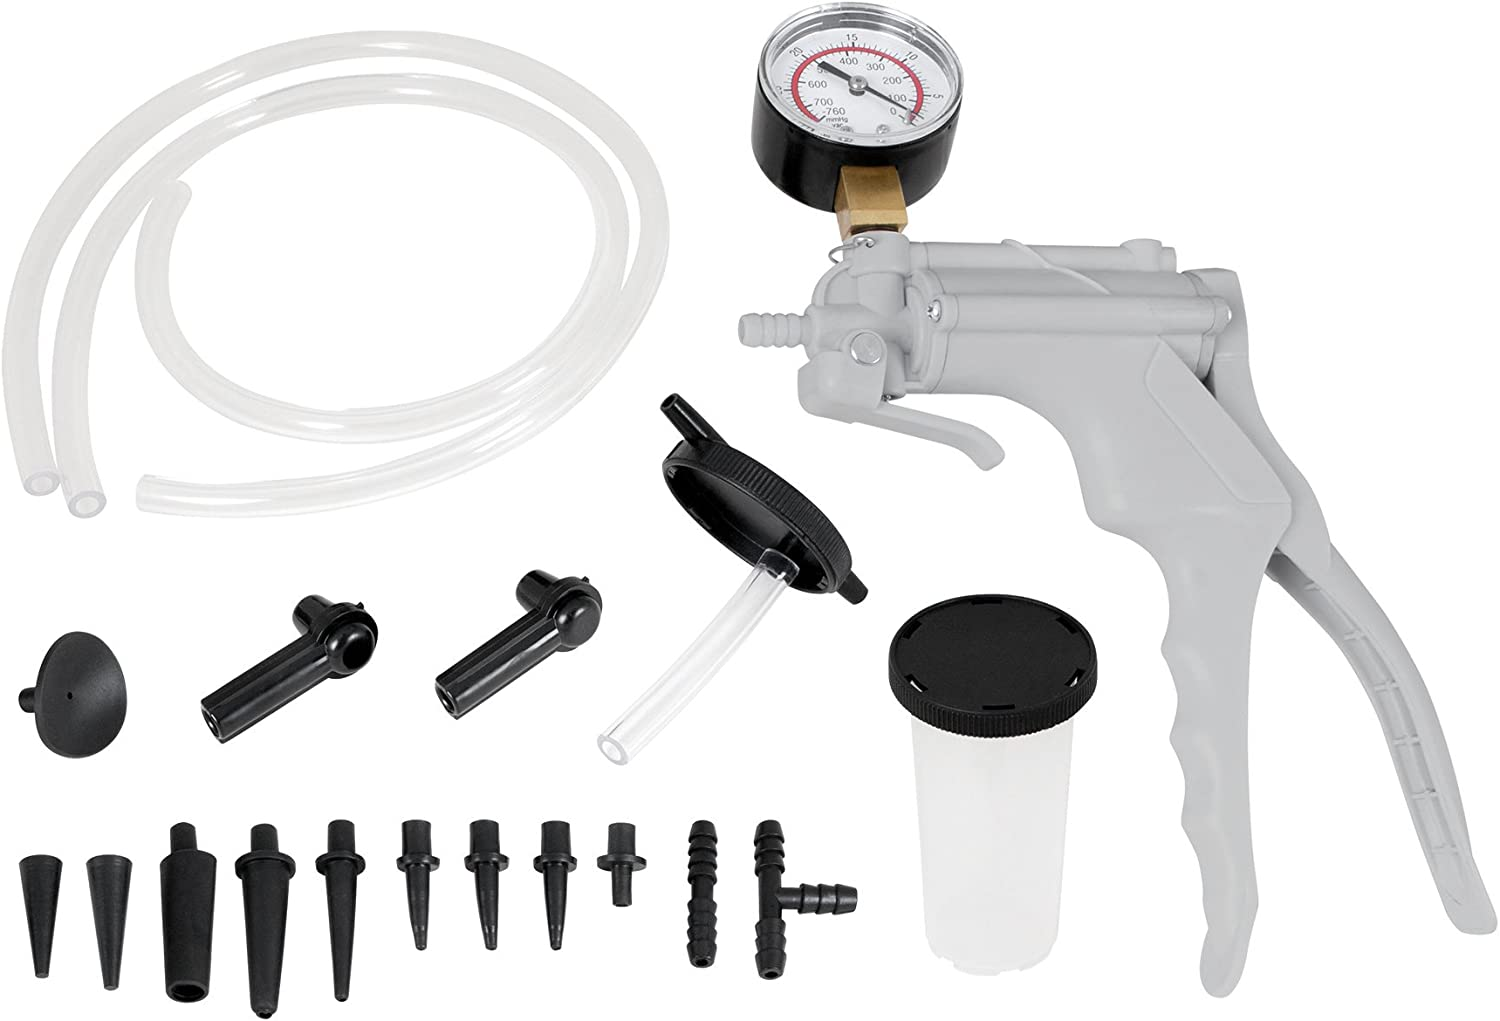 Automotive Hand Vacuum Pump Test & Brake Bleeder Kit